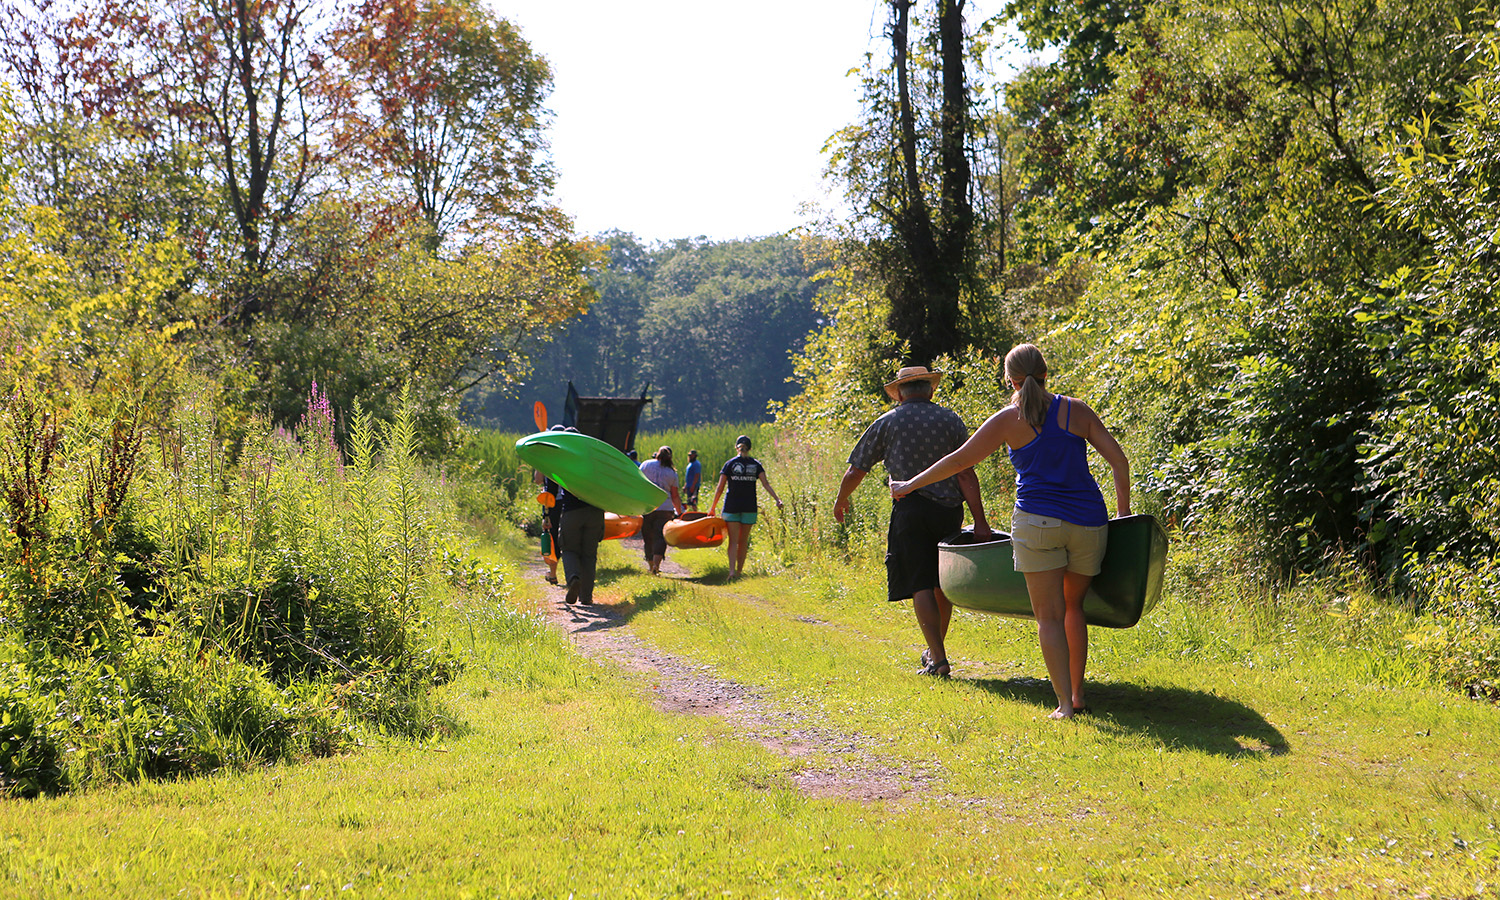 Summer interns for the Finger Lakes Institute, members of the the Nature Conservancy and the Wayne County Soil and Water Conservation gear up to pull water chestnut, and other invasive species, from Sodus Bay